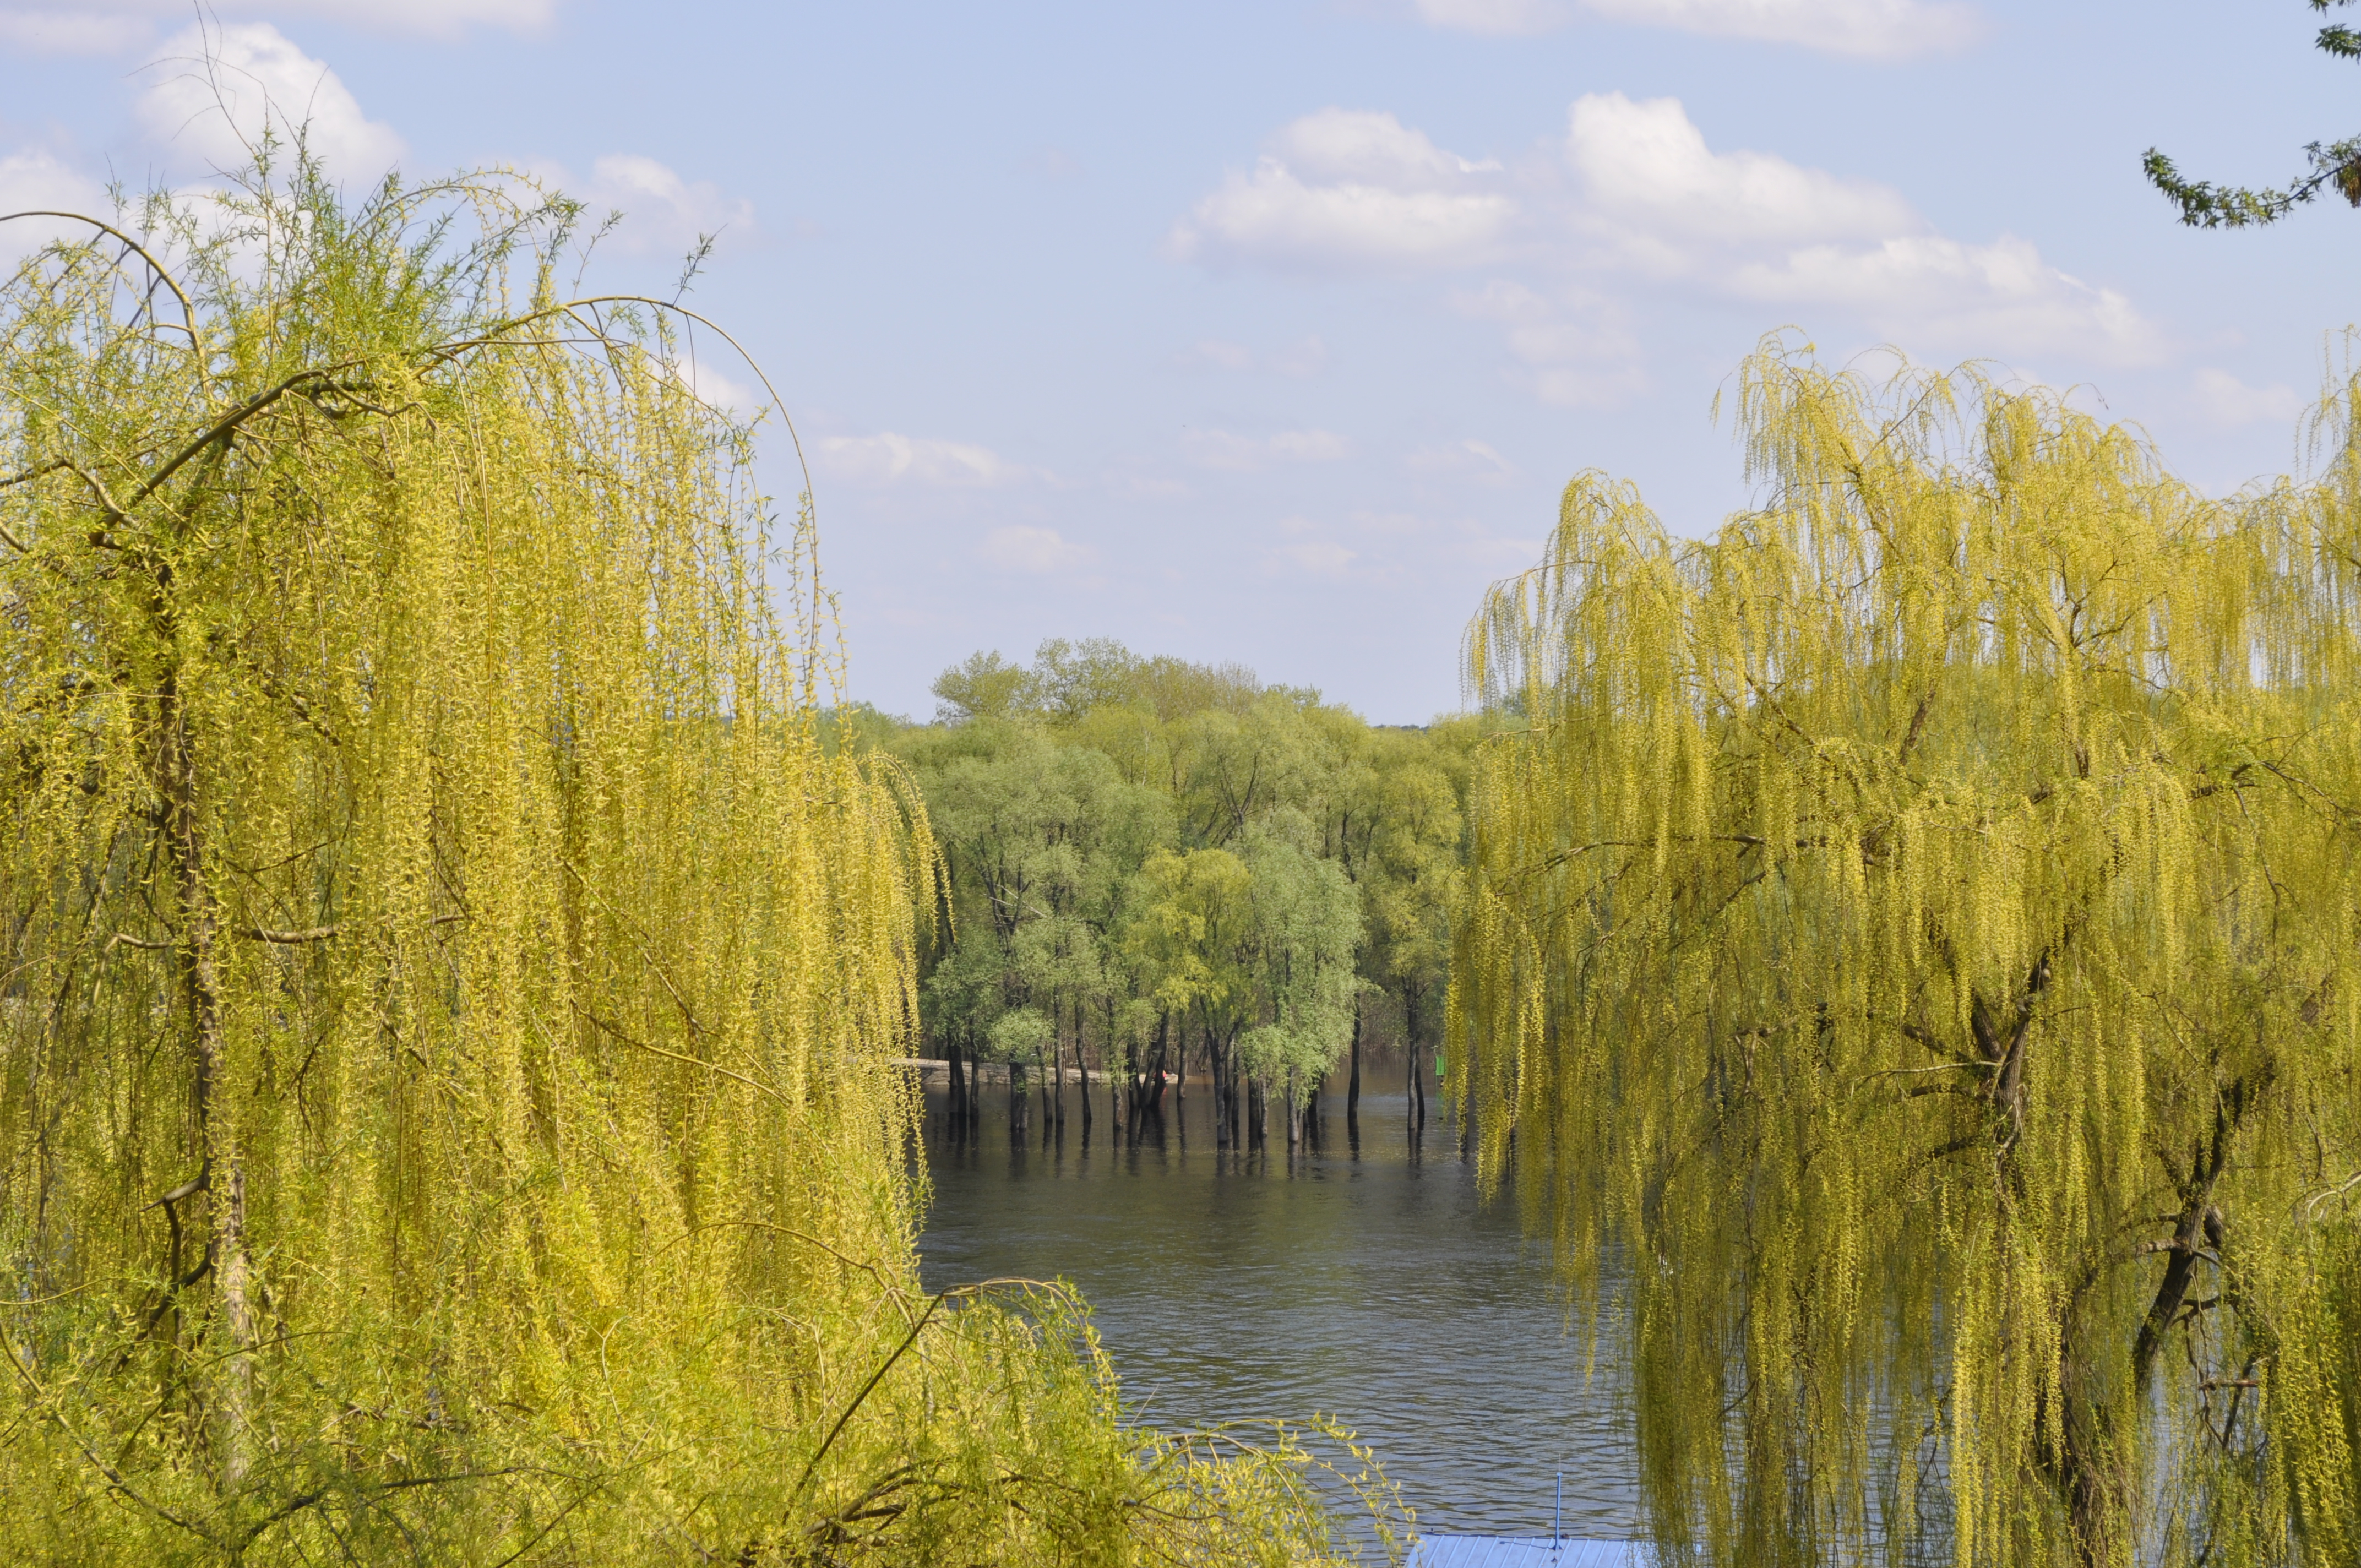 Trees, Landscape, Water, Yellow, HQ Photo